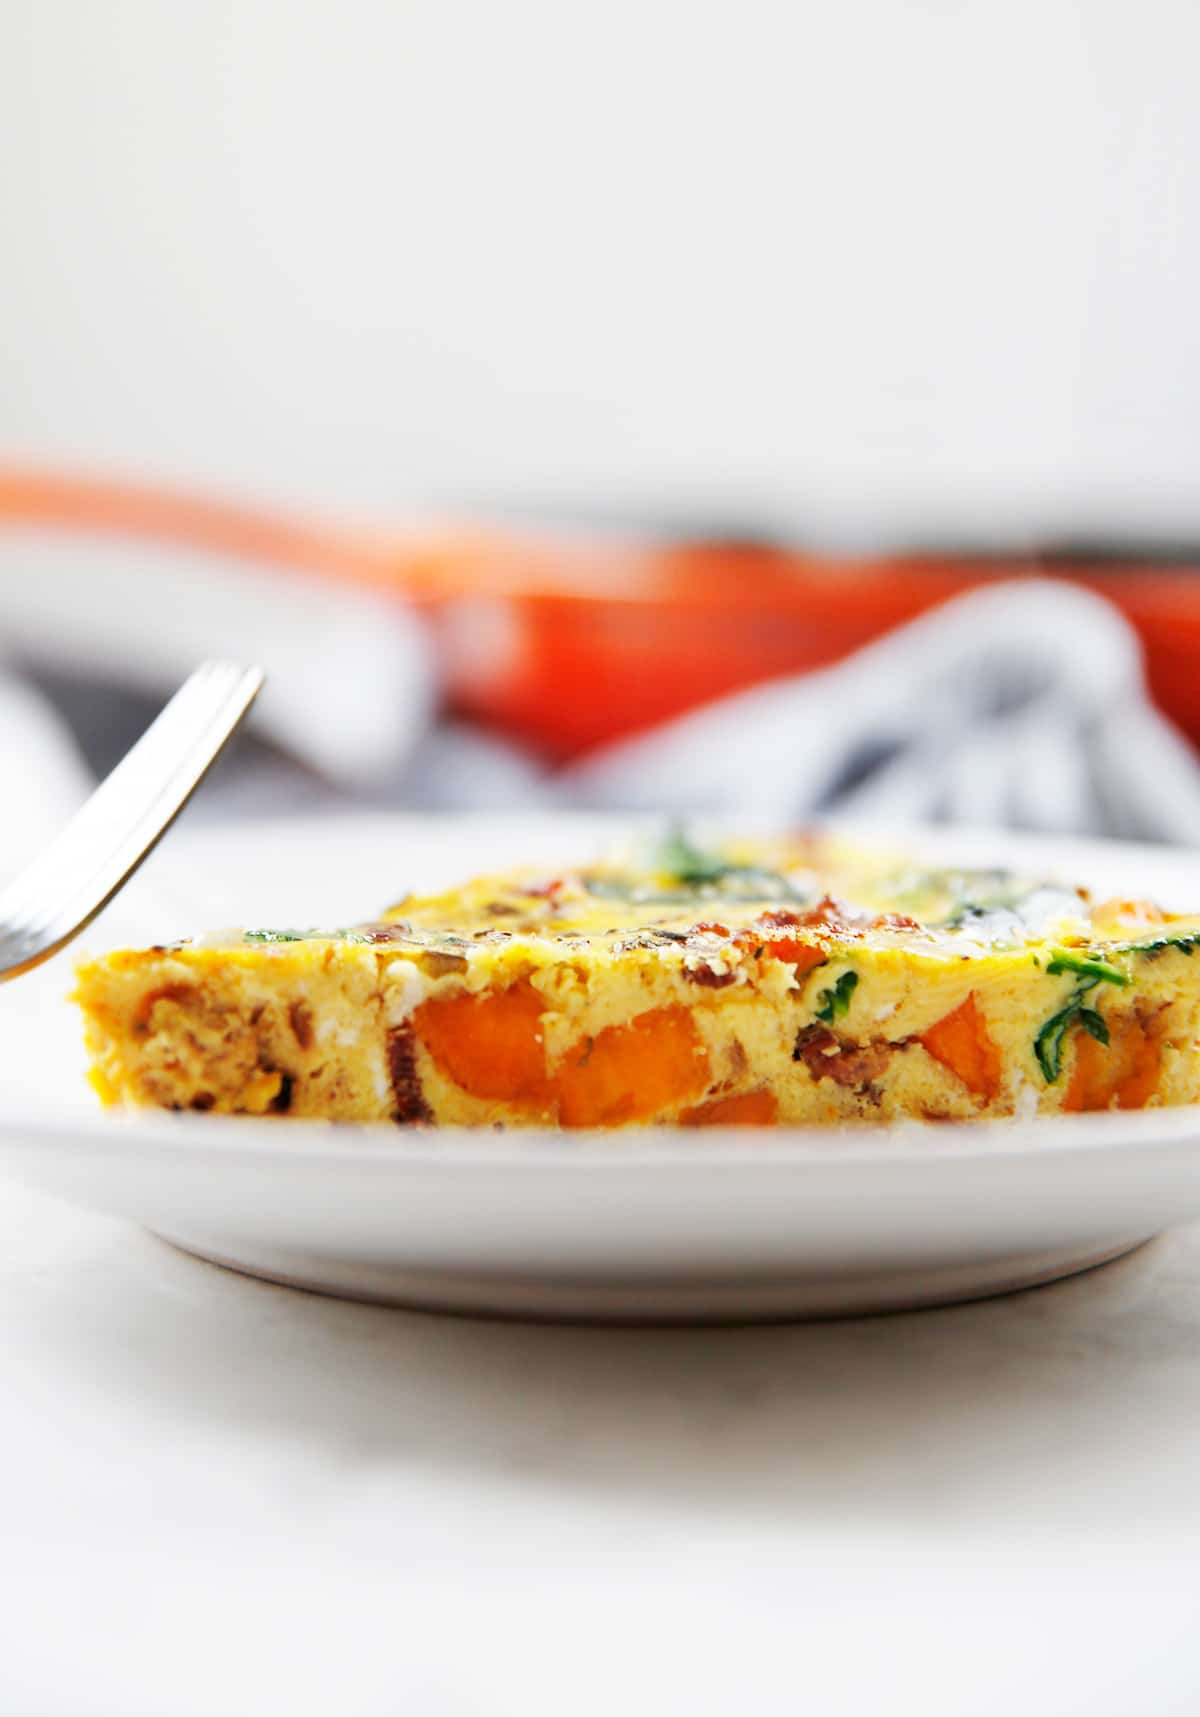 A slice of frittata with sweet potatoes on a plate.